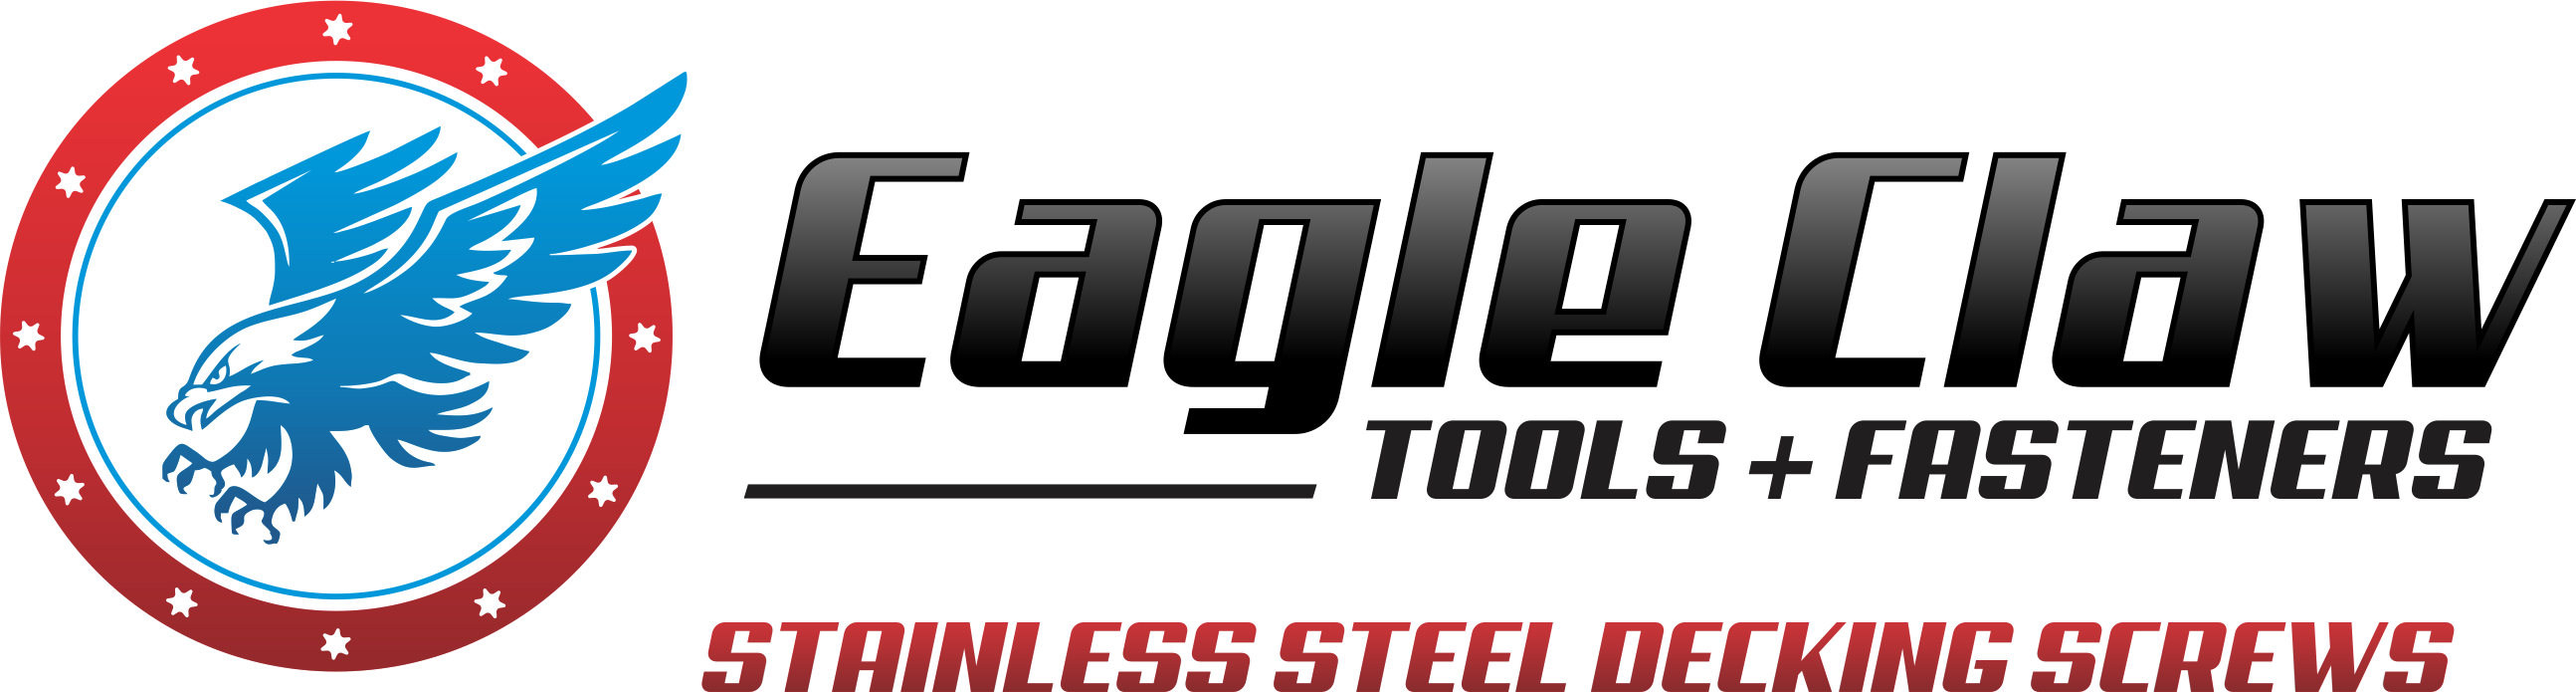 eagle-claw-logo-decking-screws.png